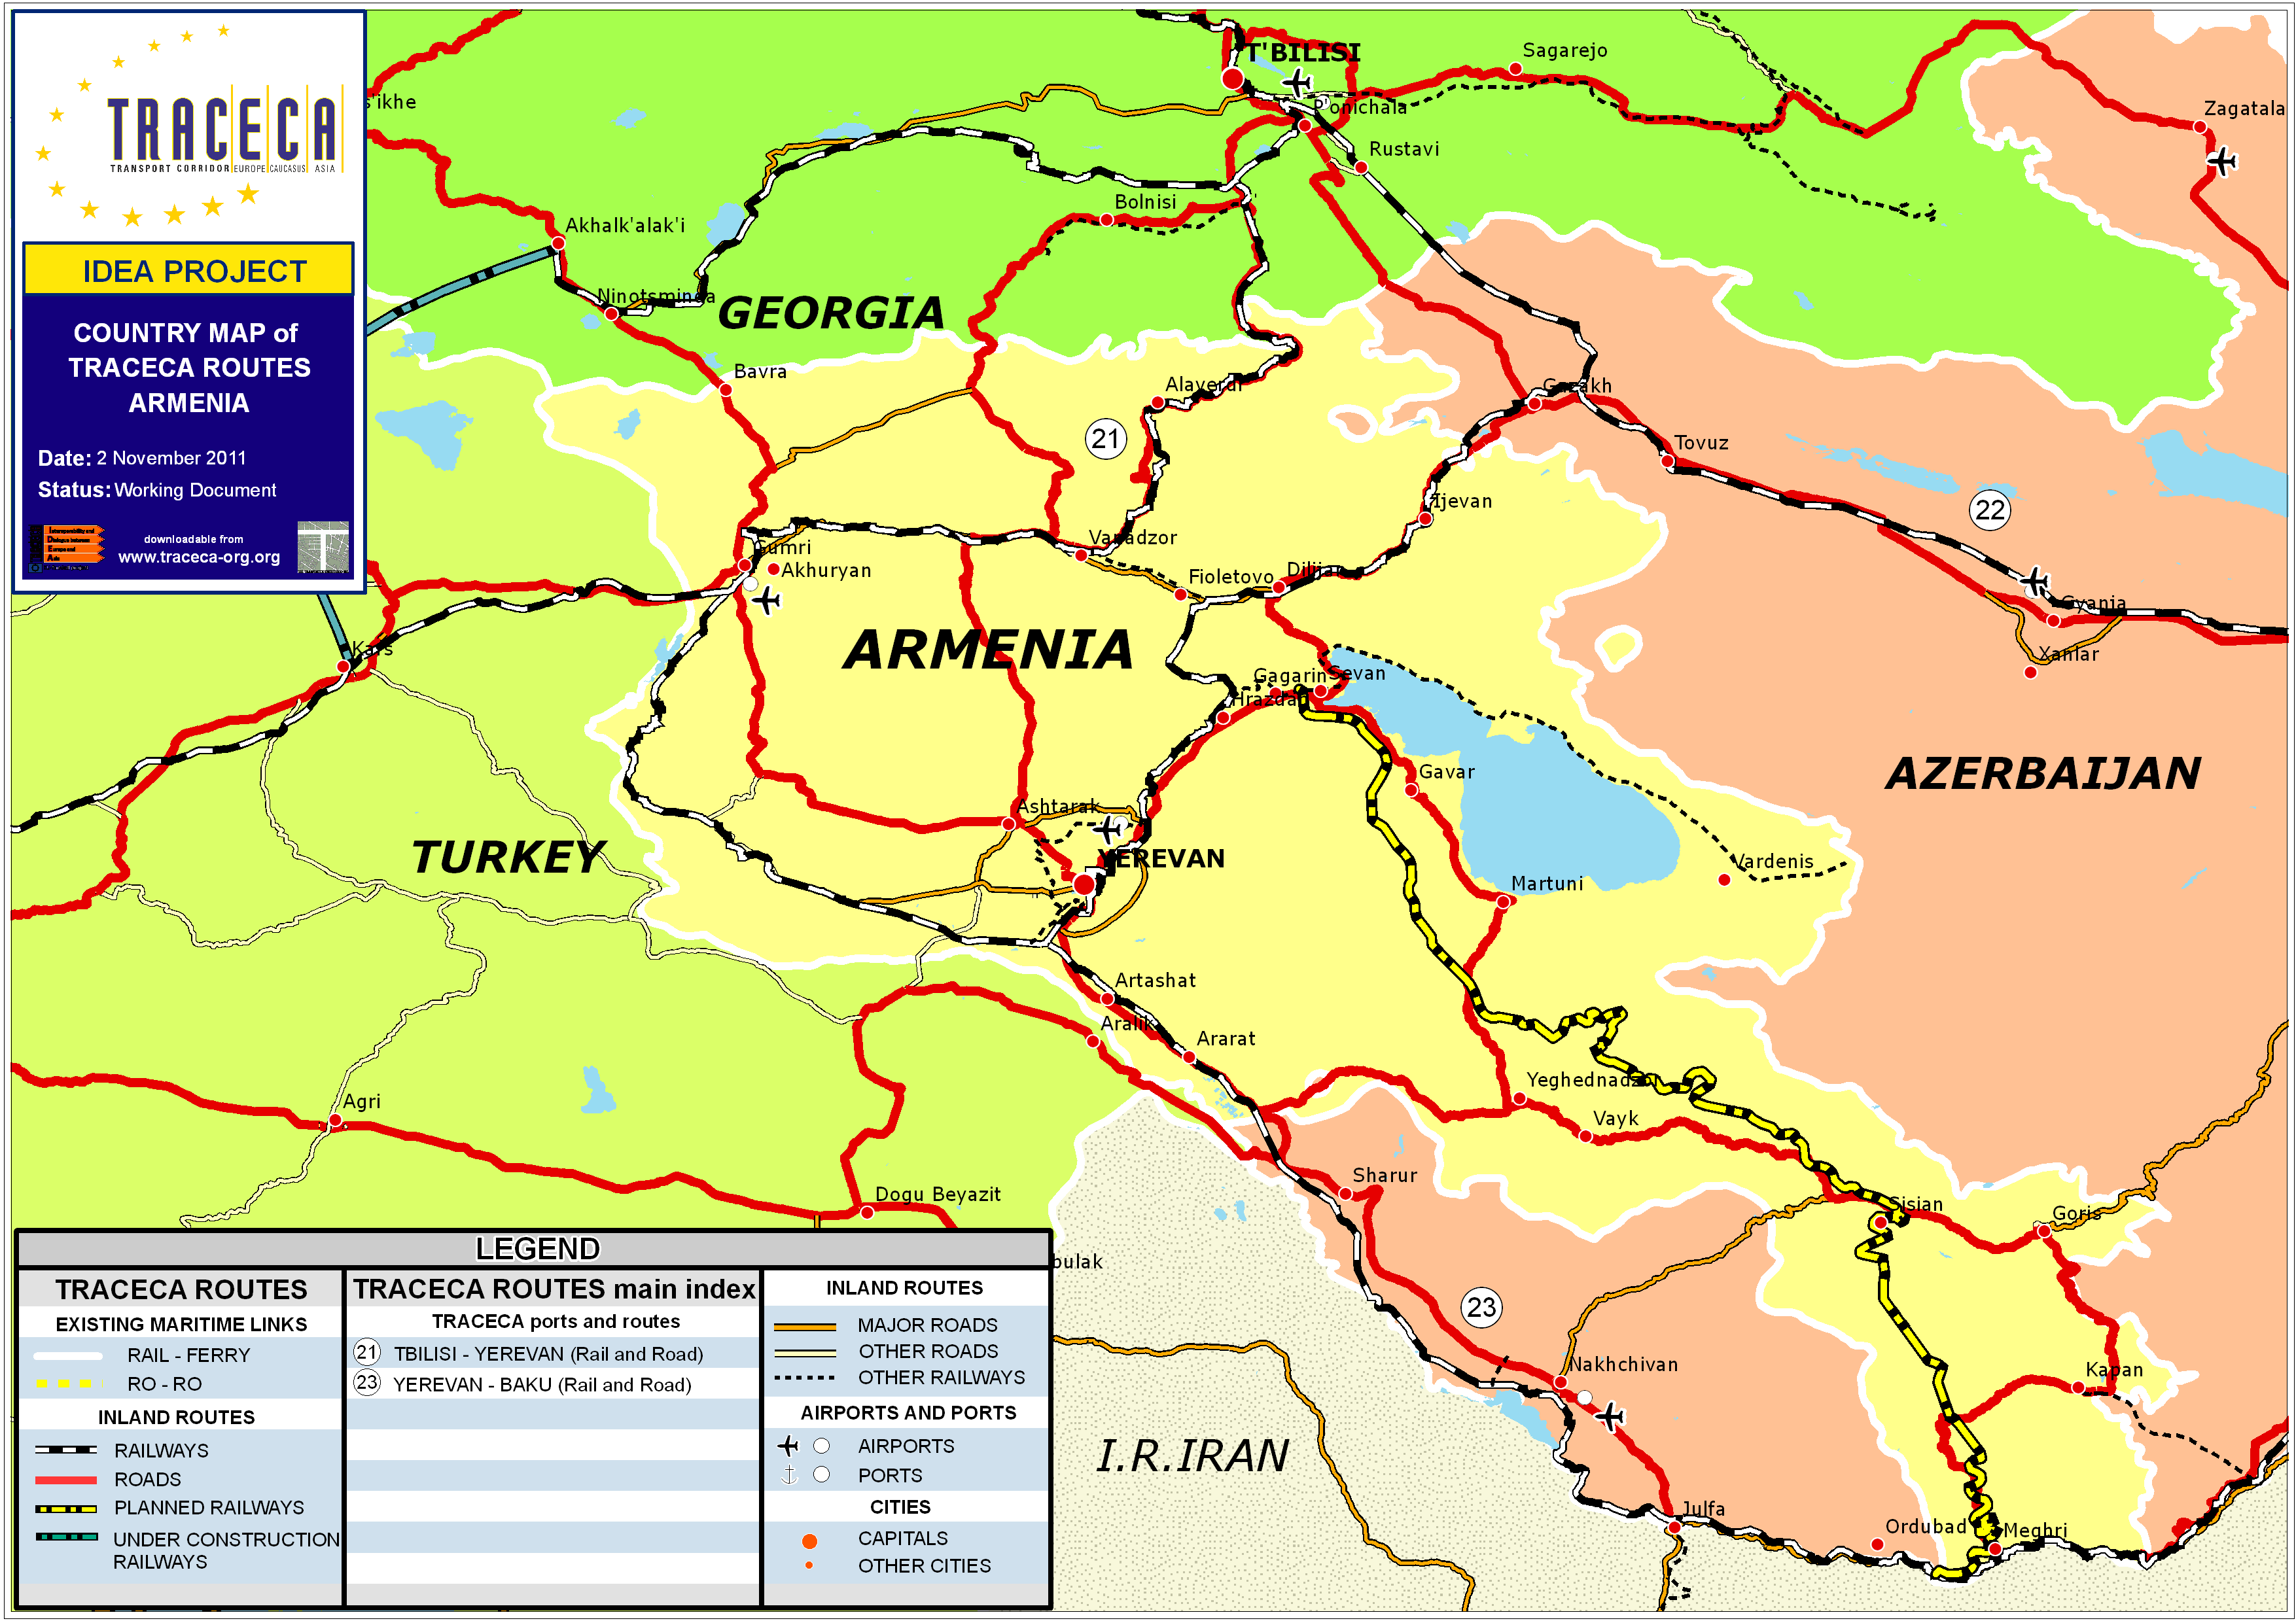 Maps Downloads / GIS Database. TRACECA ORG on map language, map of ur and uruk, map print, map design, map art, map games, map of asean countries, map services, map java, map of afghanistan and pakistan, map web, map book, map projection, map history, map data, map world, map project, map of mobile, map drawing,